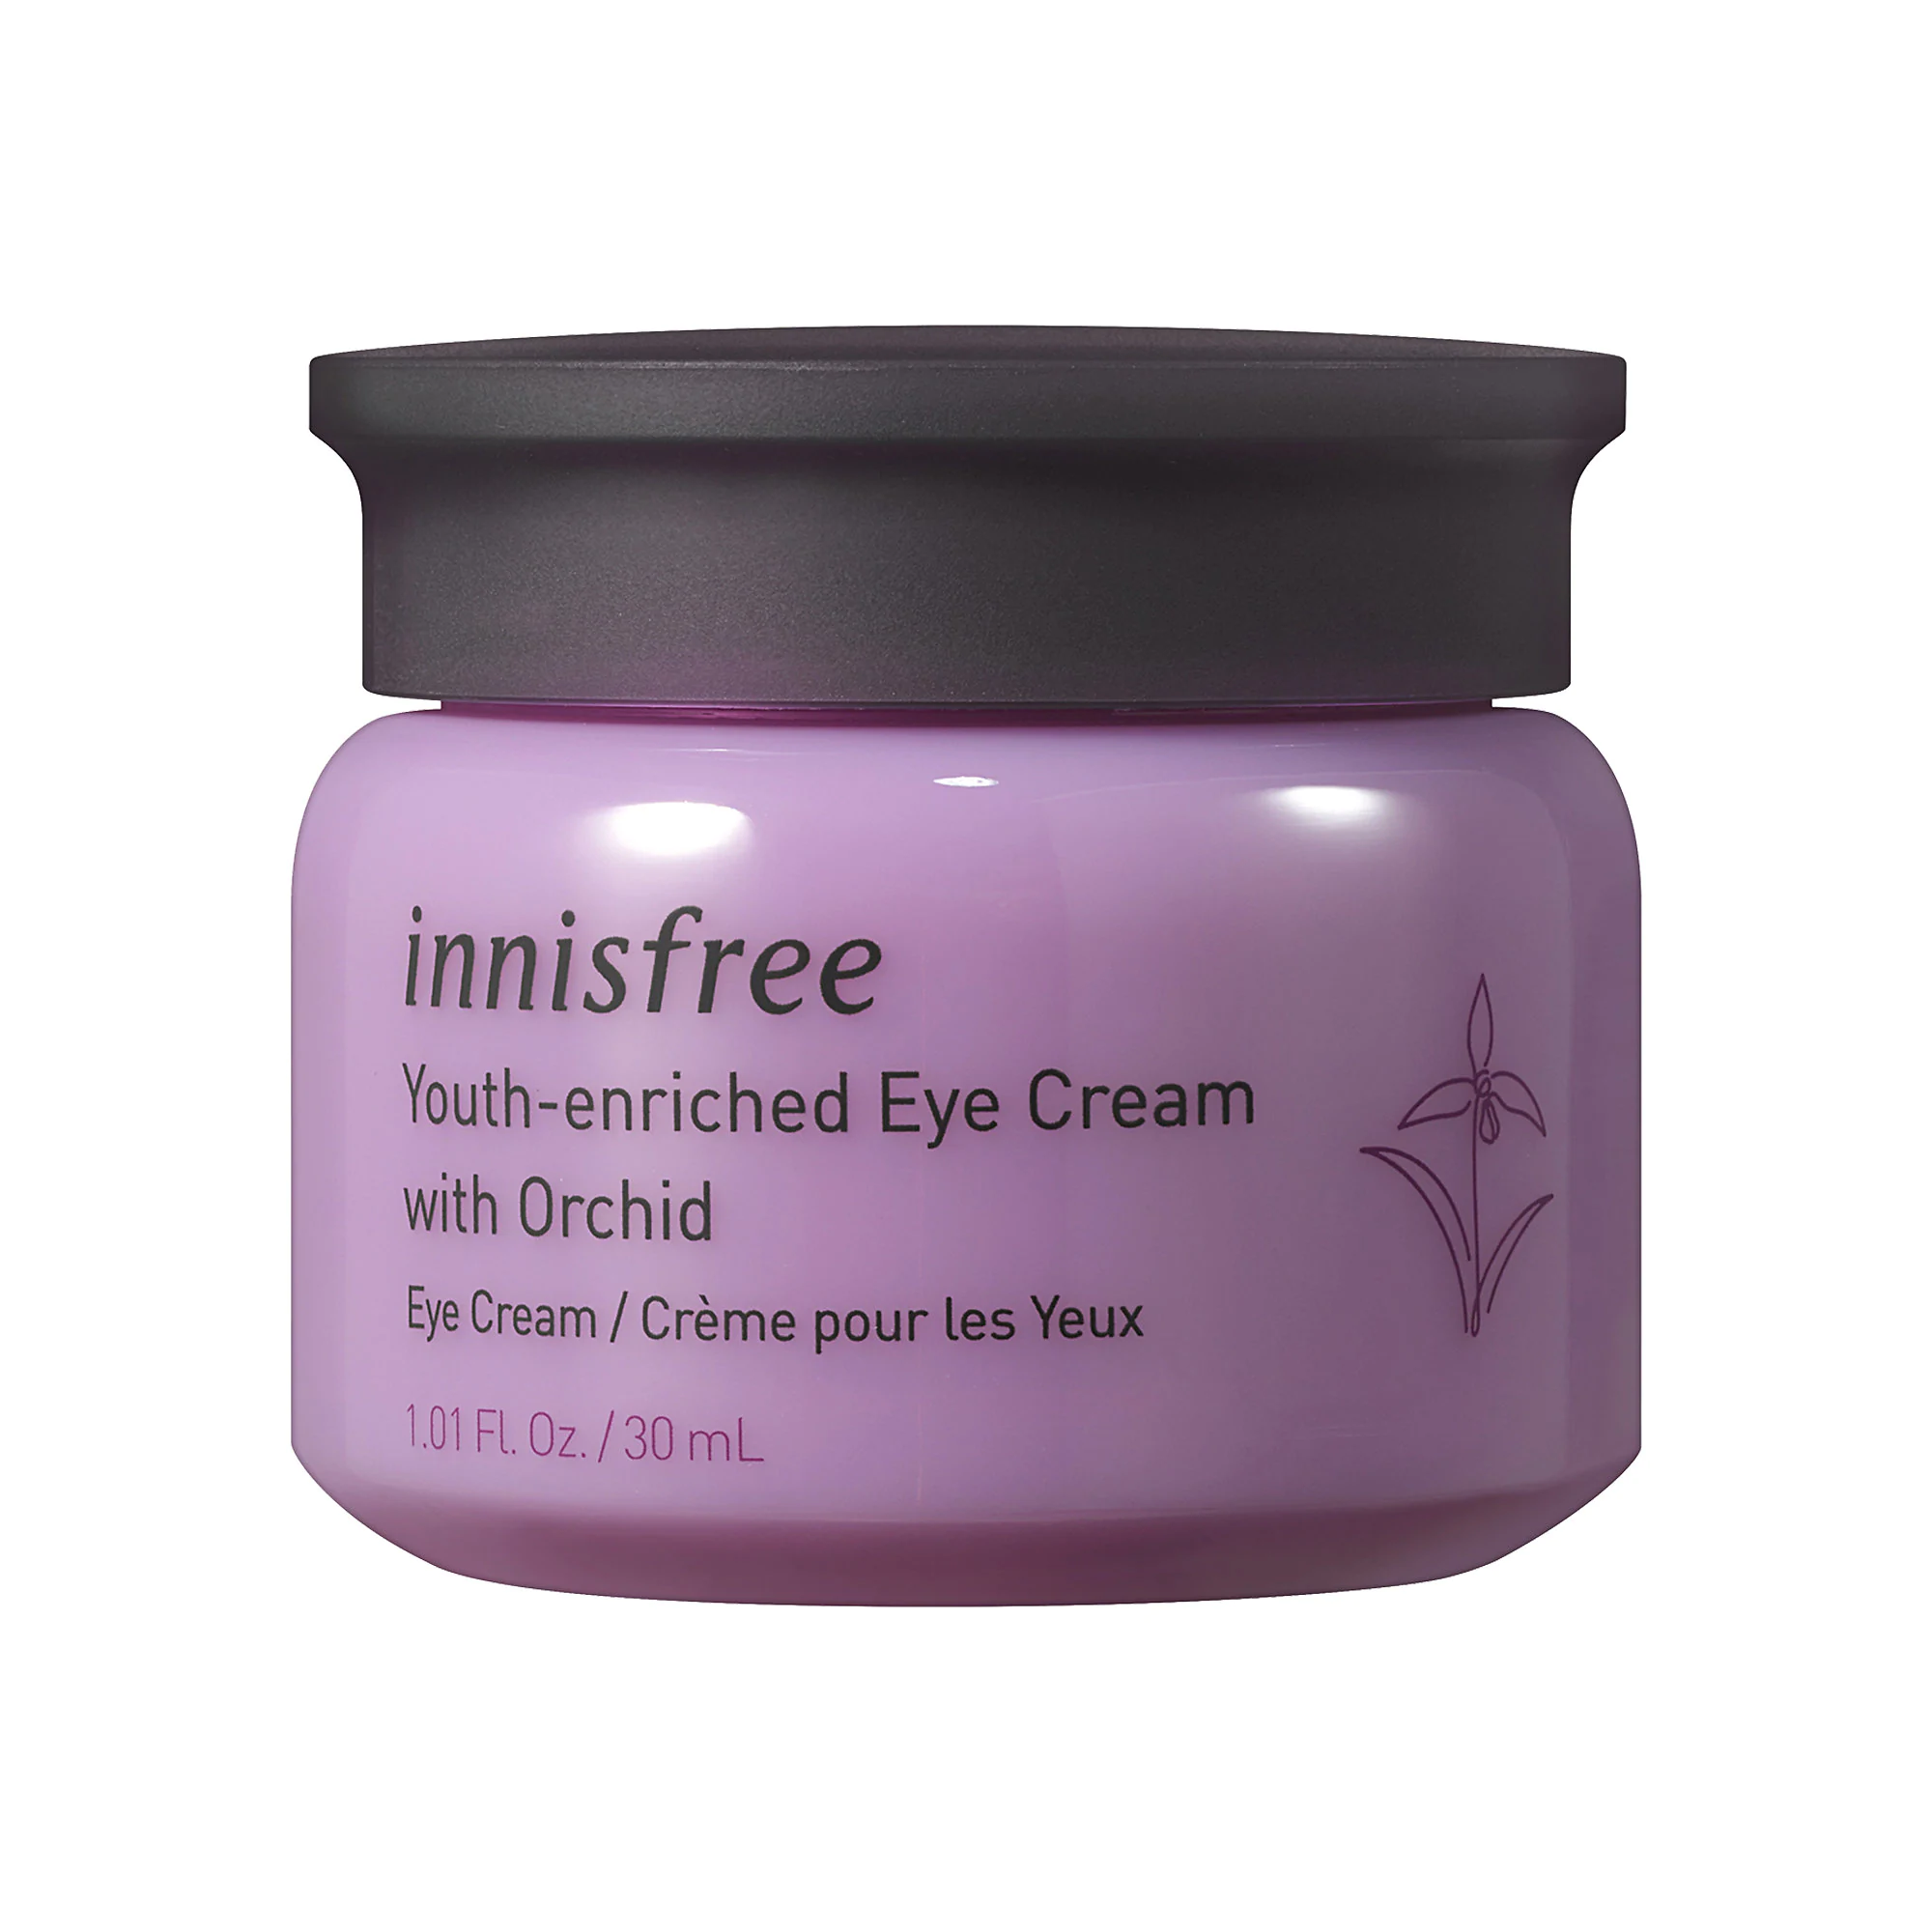 Innisfree Orchid Youth-Enriched Eye Cream